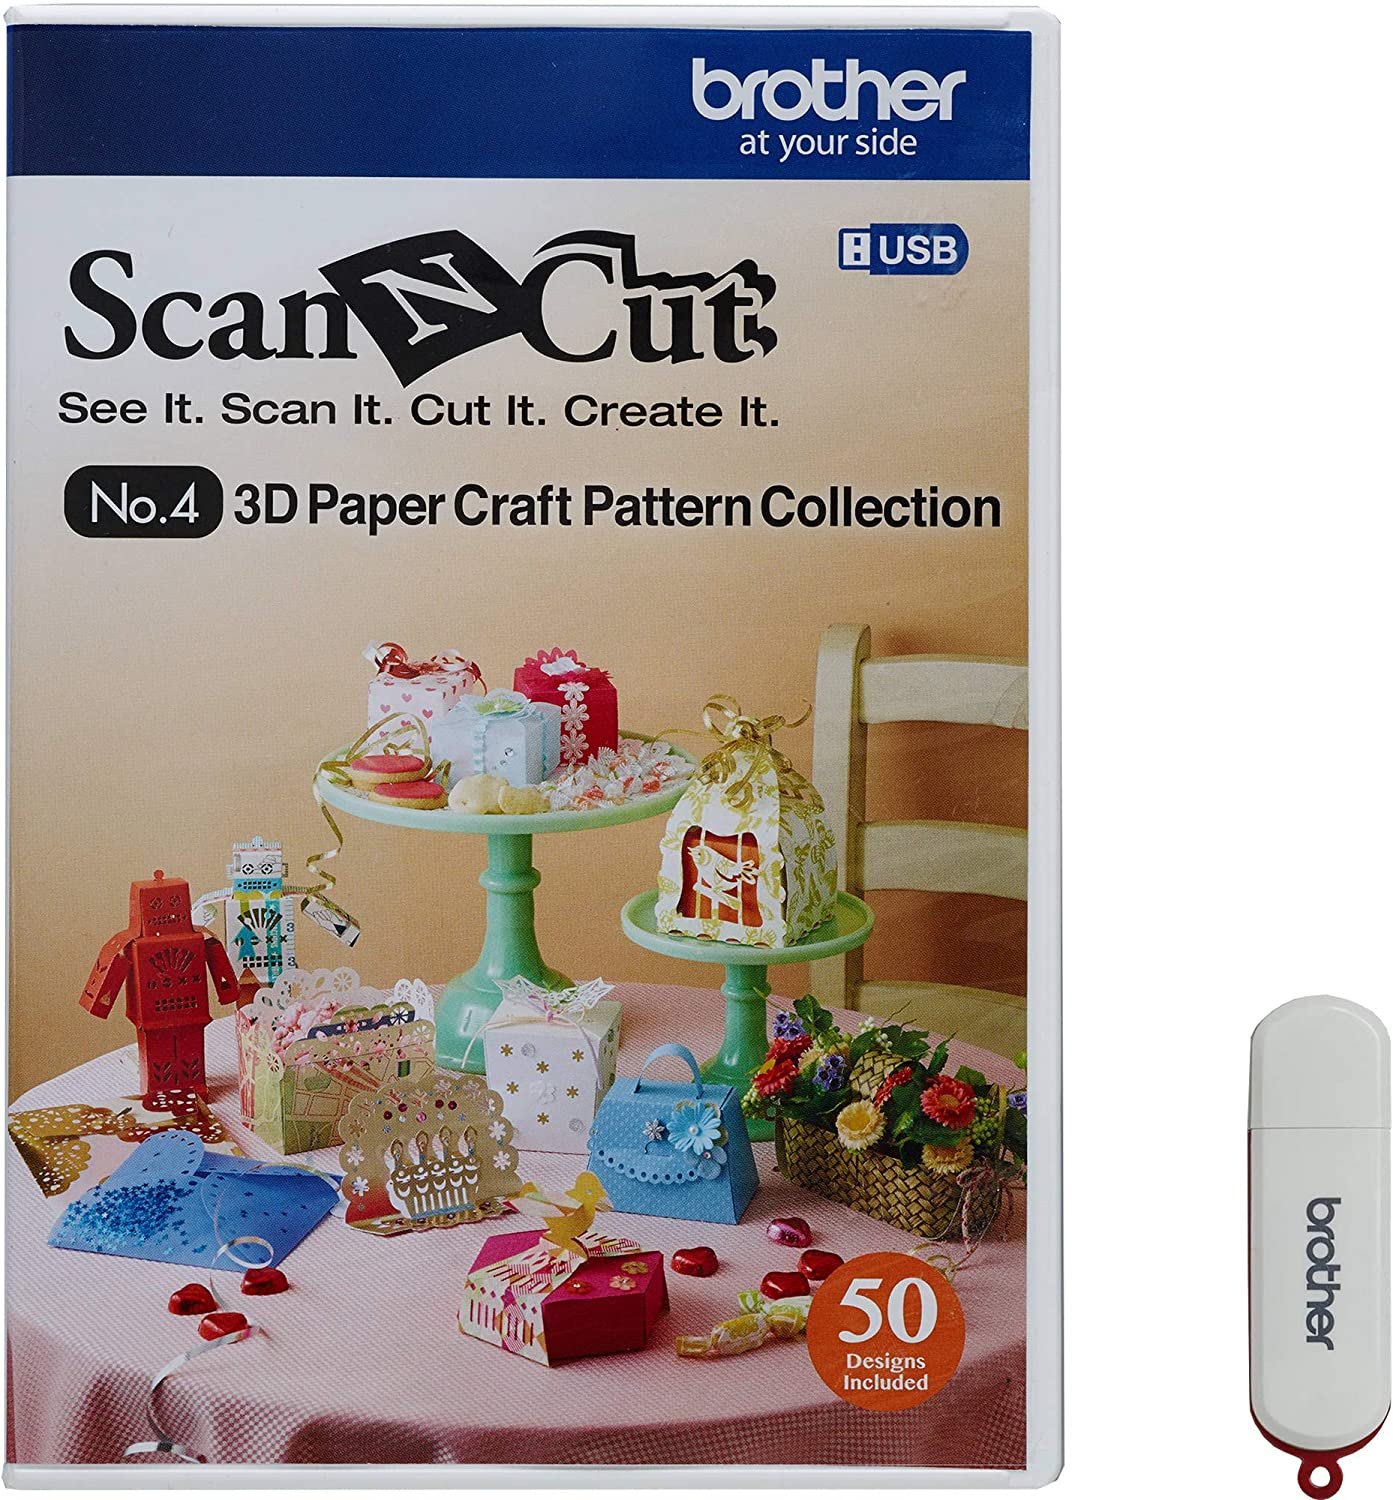 Brother ScanNCut CAUSB4 No. 4 3D Paper Craft Pattern Collection (USB Stick): Amazon.es: Hogar